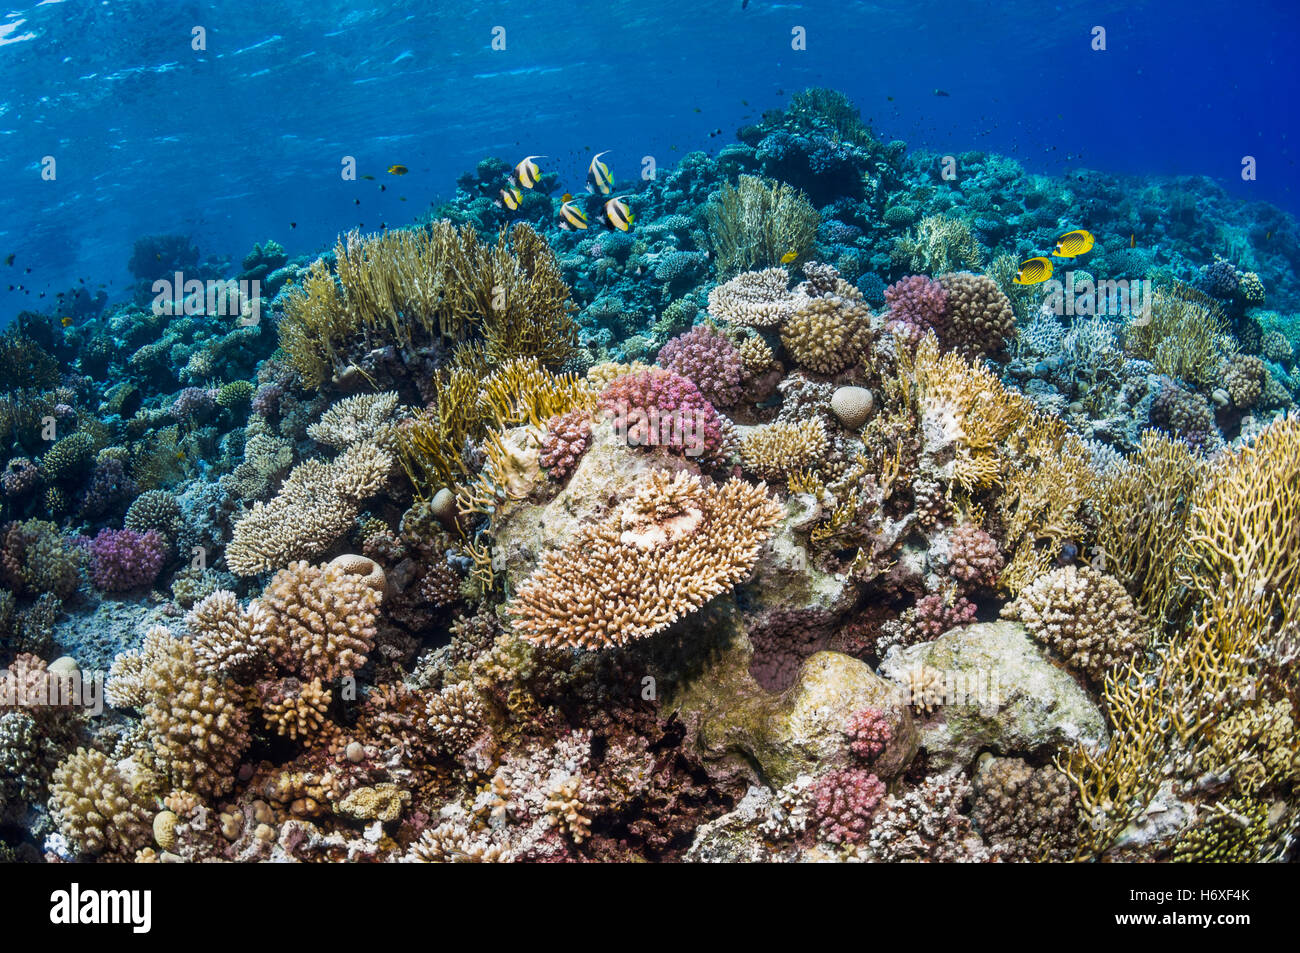 Top of coral reef with Red Sea bannerfish [Heniochus intermedius] and Red Sea butterflyfish [Chaetodon fasciatus]. - Stock Image